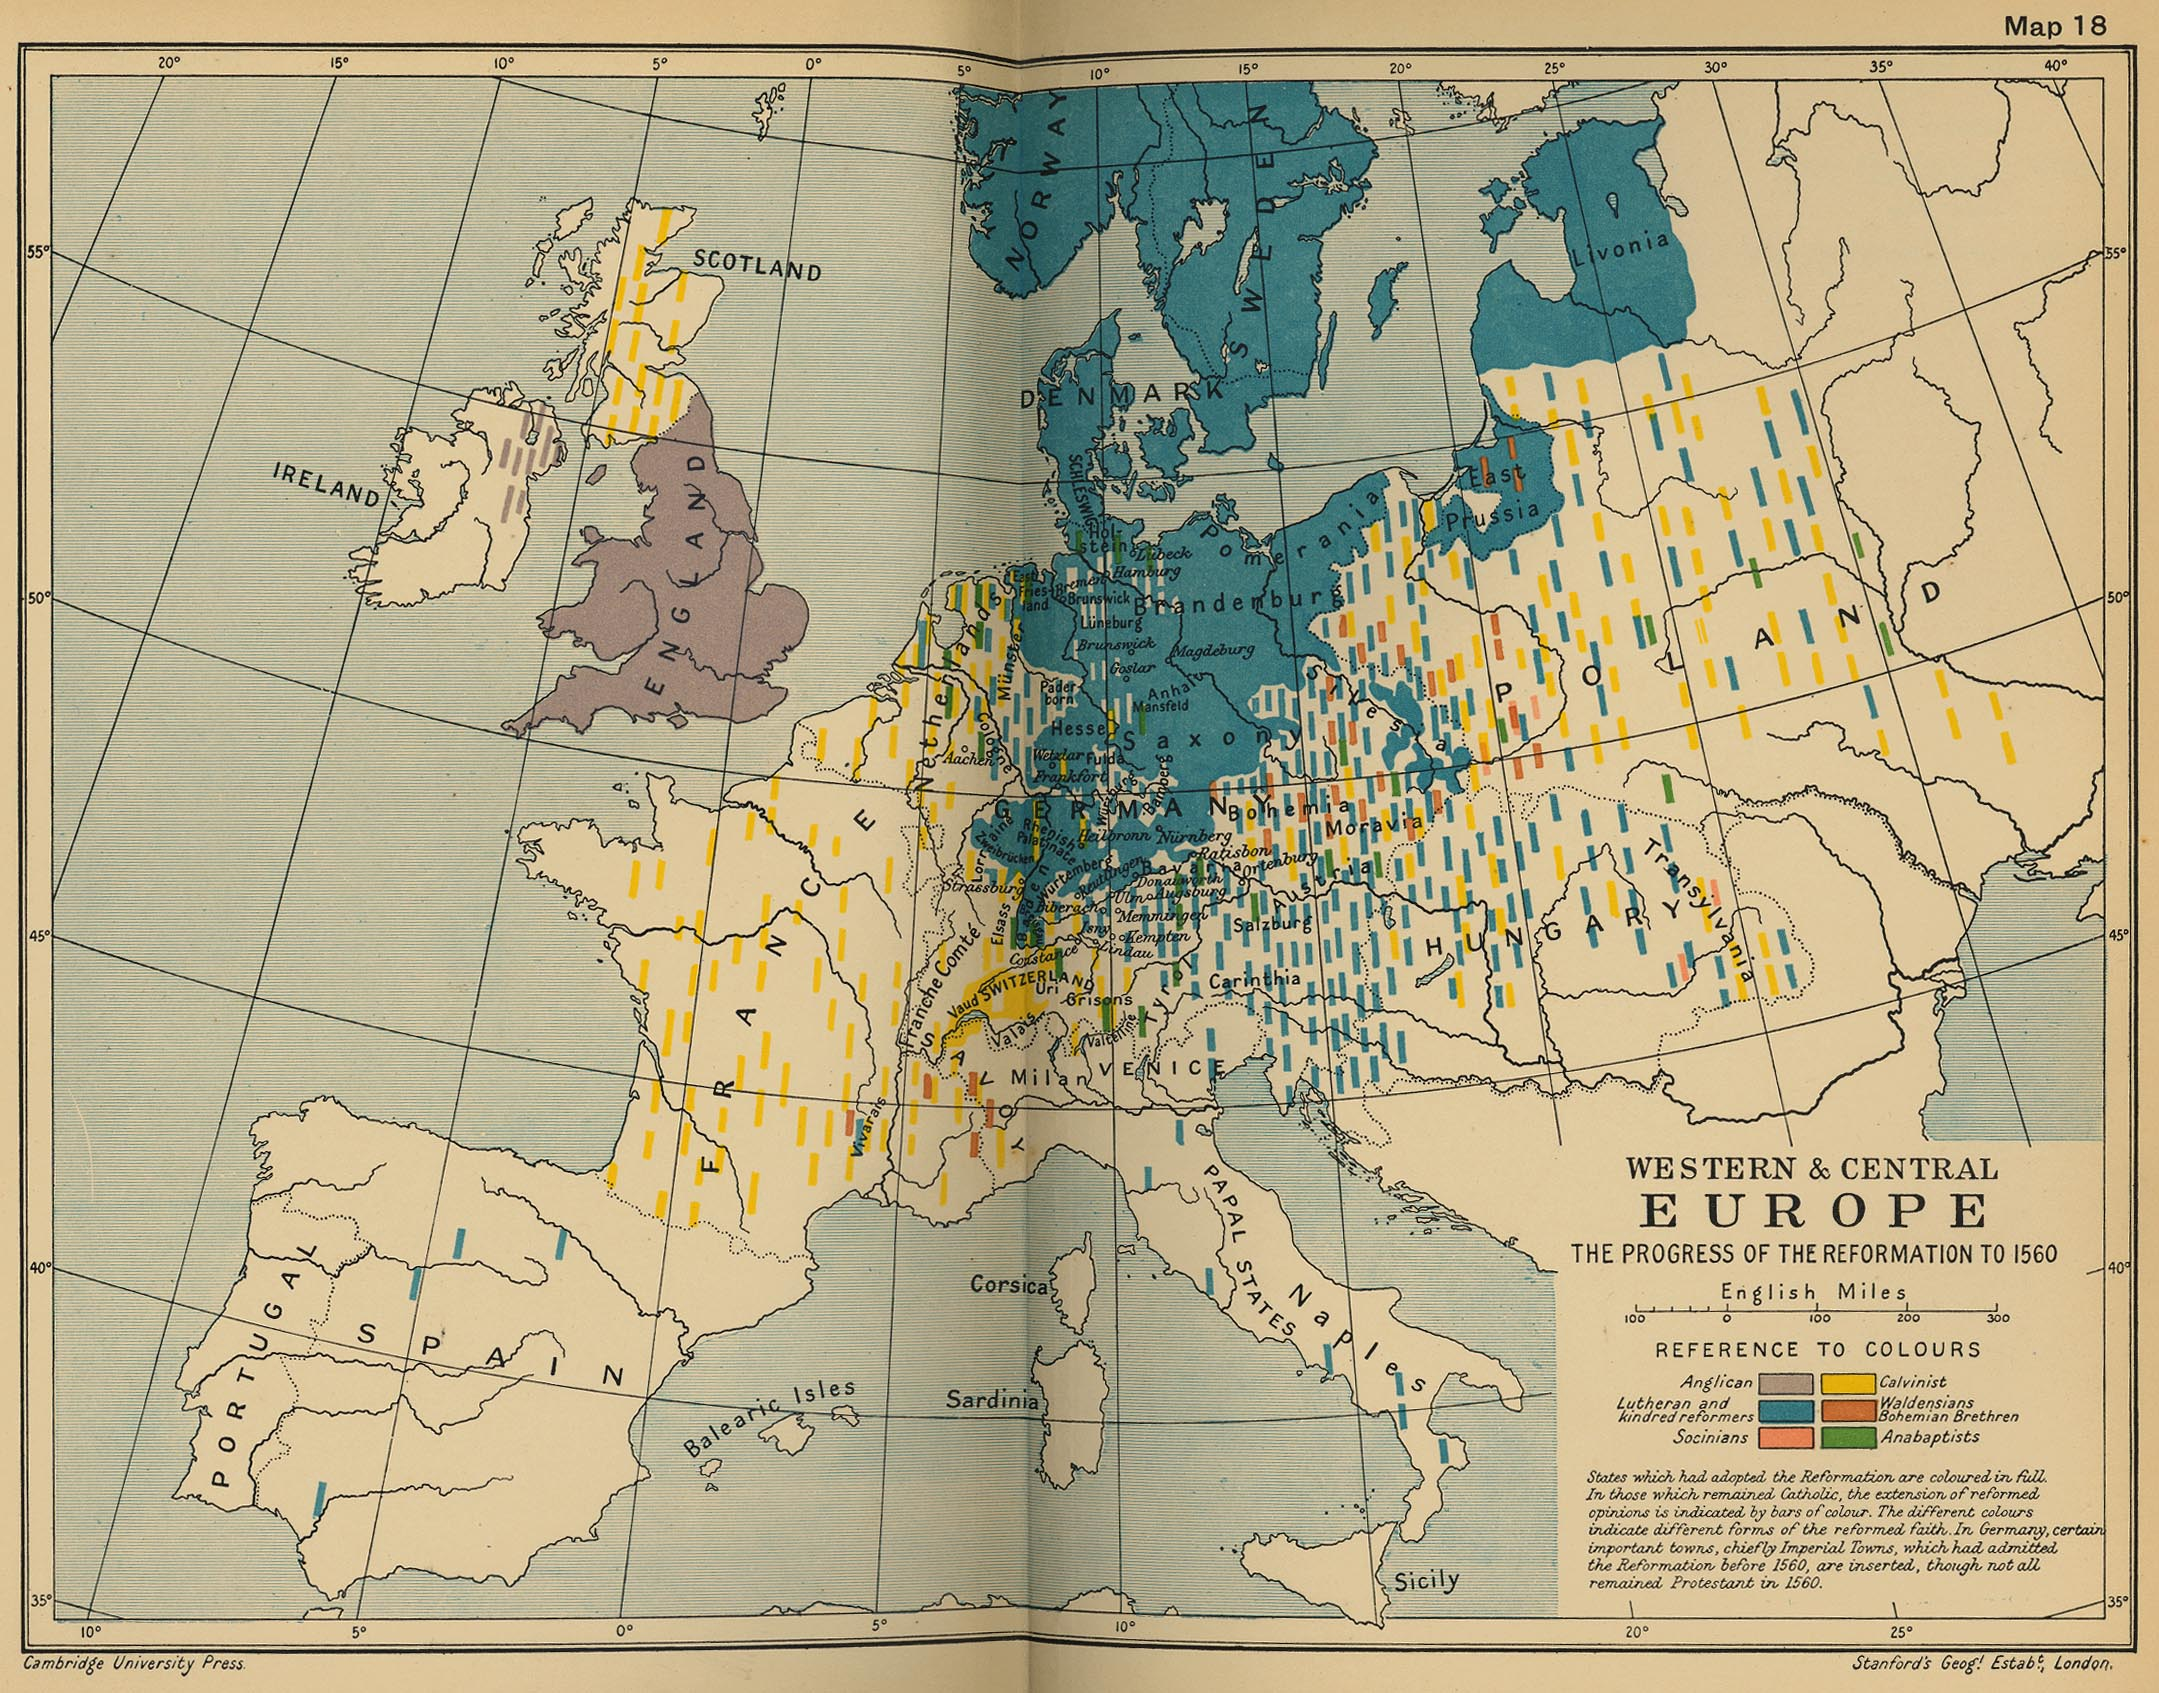 an analysis of the reformation in europe Summary the first events of the english reformation occurred alongside henry  viii's sensational divorce proceedings henry himself was not a protestant, and.